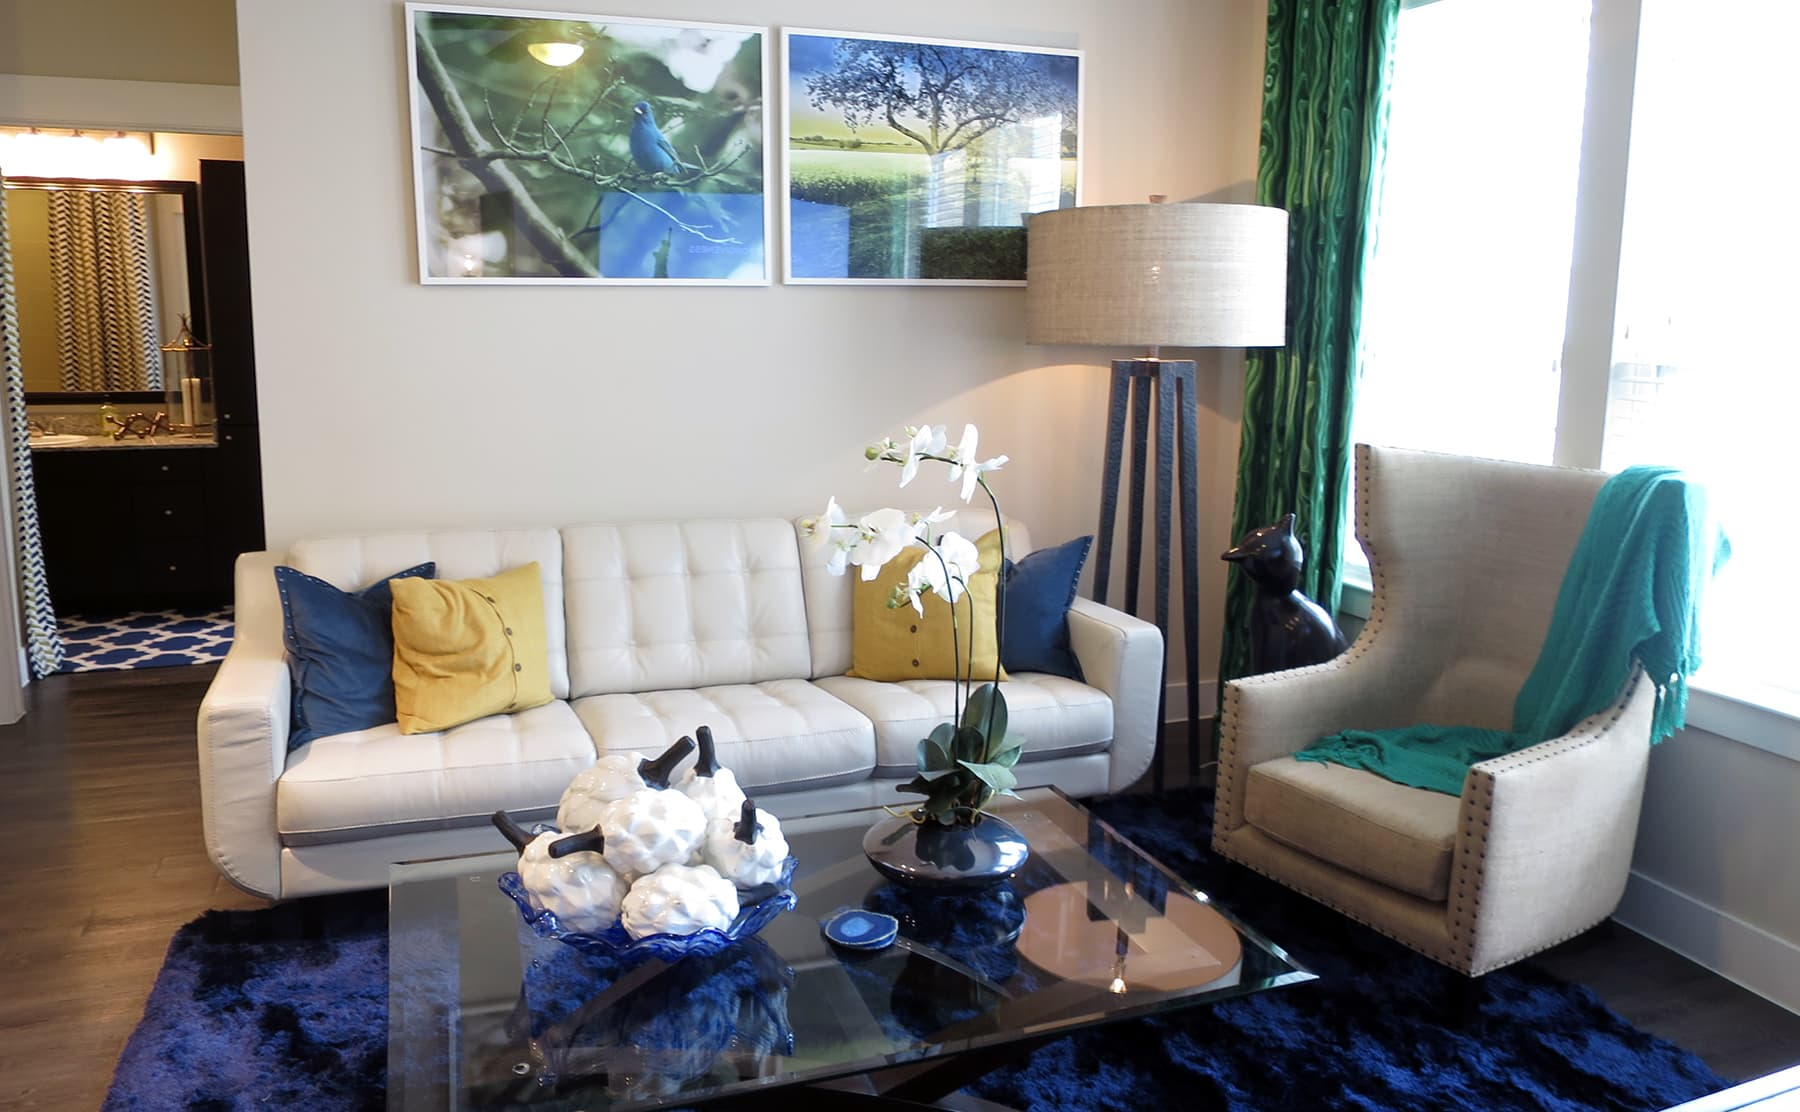 Las Colinas - Irving Apartment Living - Beautifully Furnished